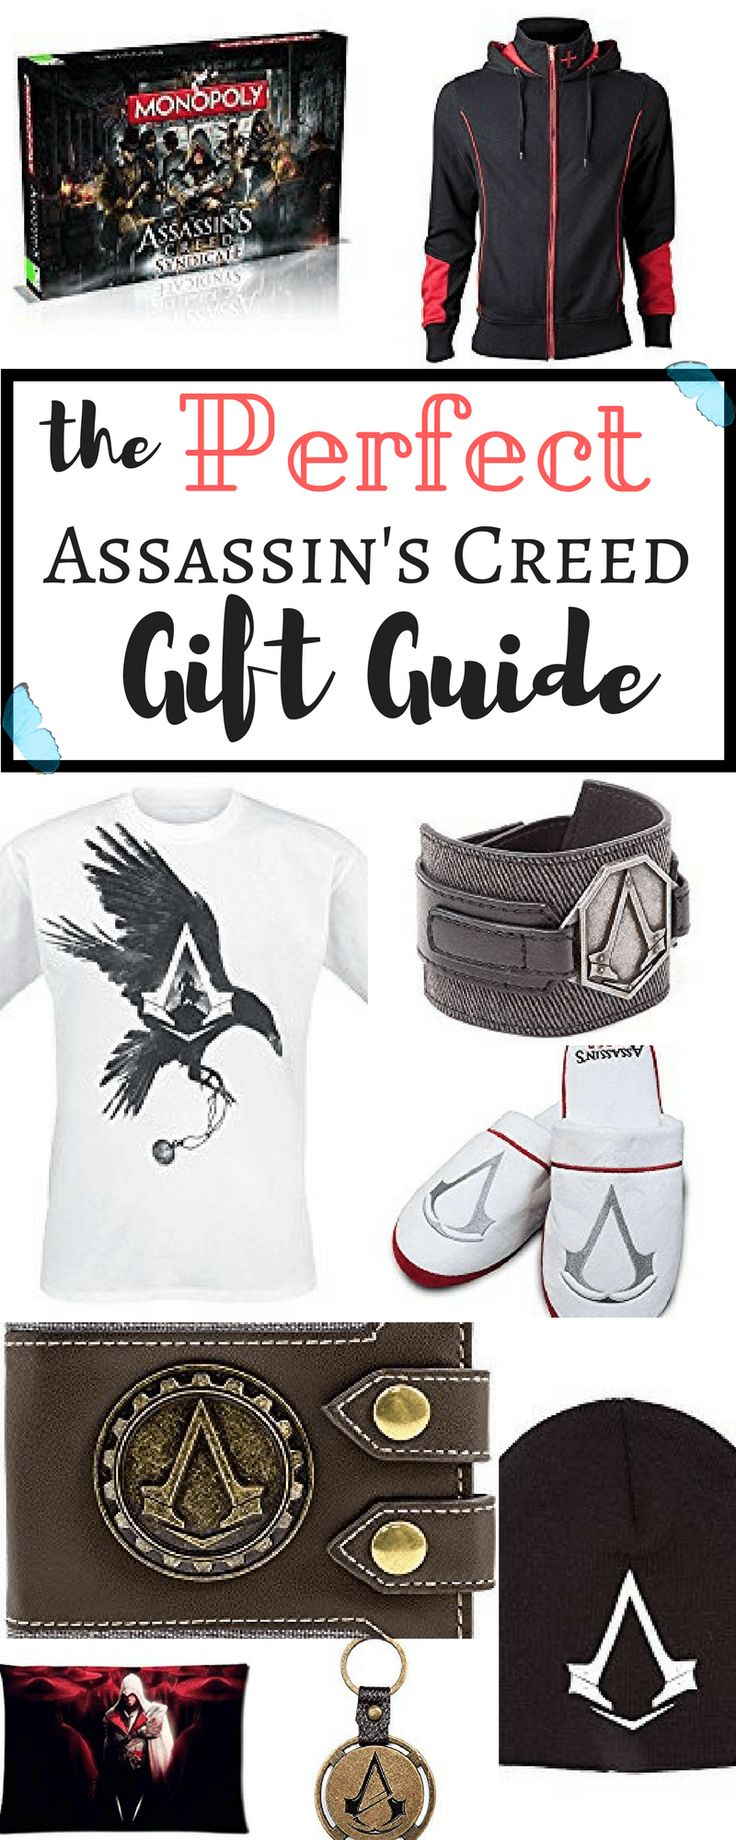 Do you know an Assassin's Creed enthusiast that just needs some cool merchandise in his collection? Are you one and want practical and fun gifts this Christmas? You've come to the right place! Here's our Assassin's Creed Gift Guide for all the maniacs!